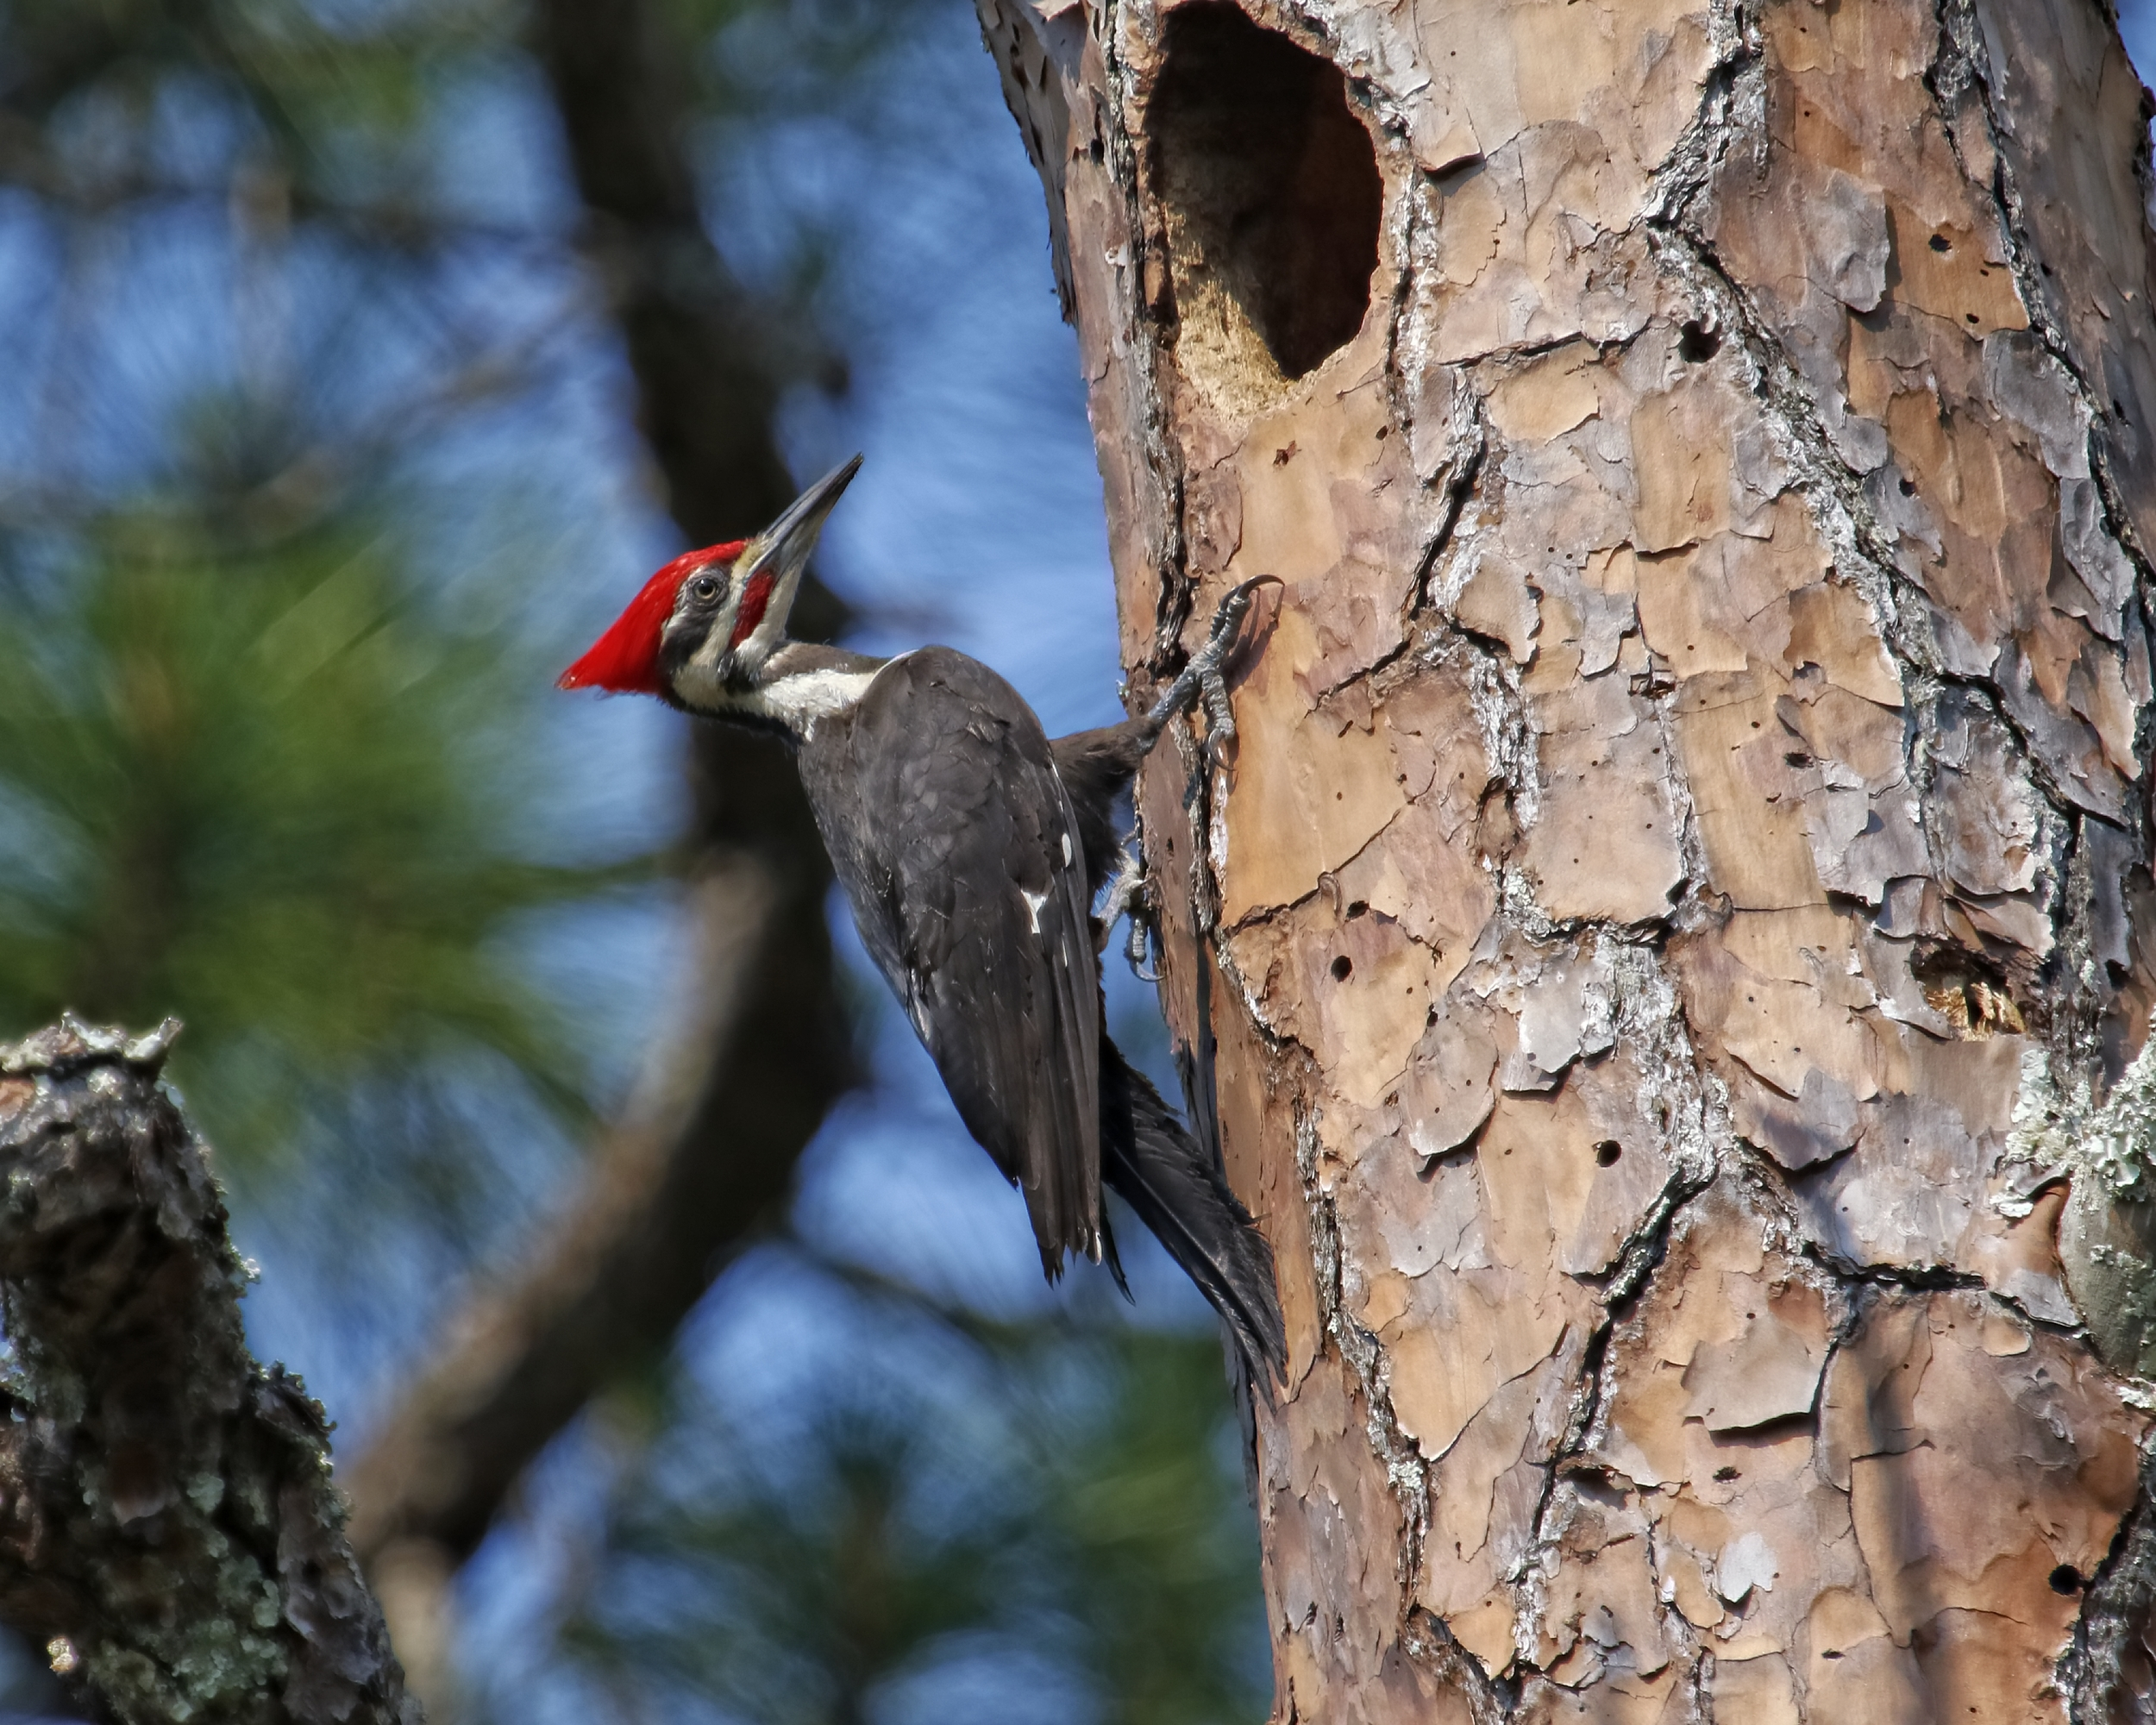 Male Pileated Woodpecker (note red stripe under the beak) at the nest.